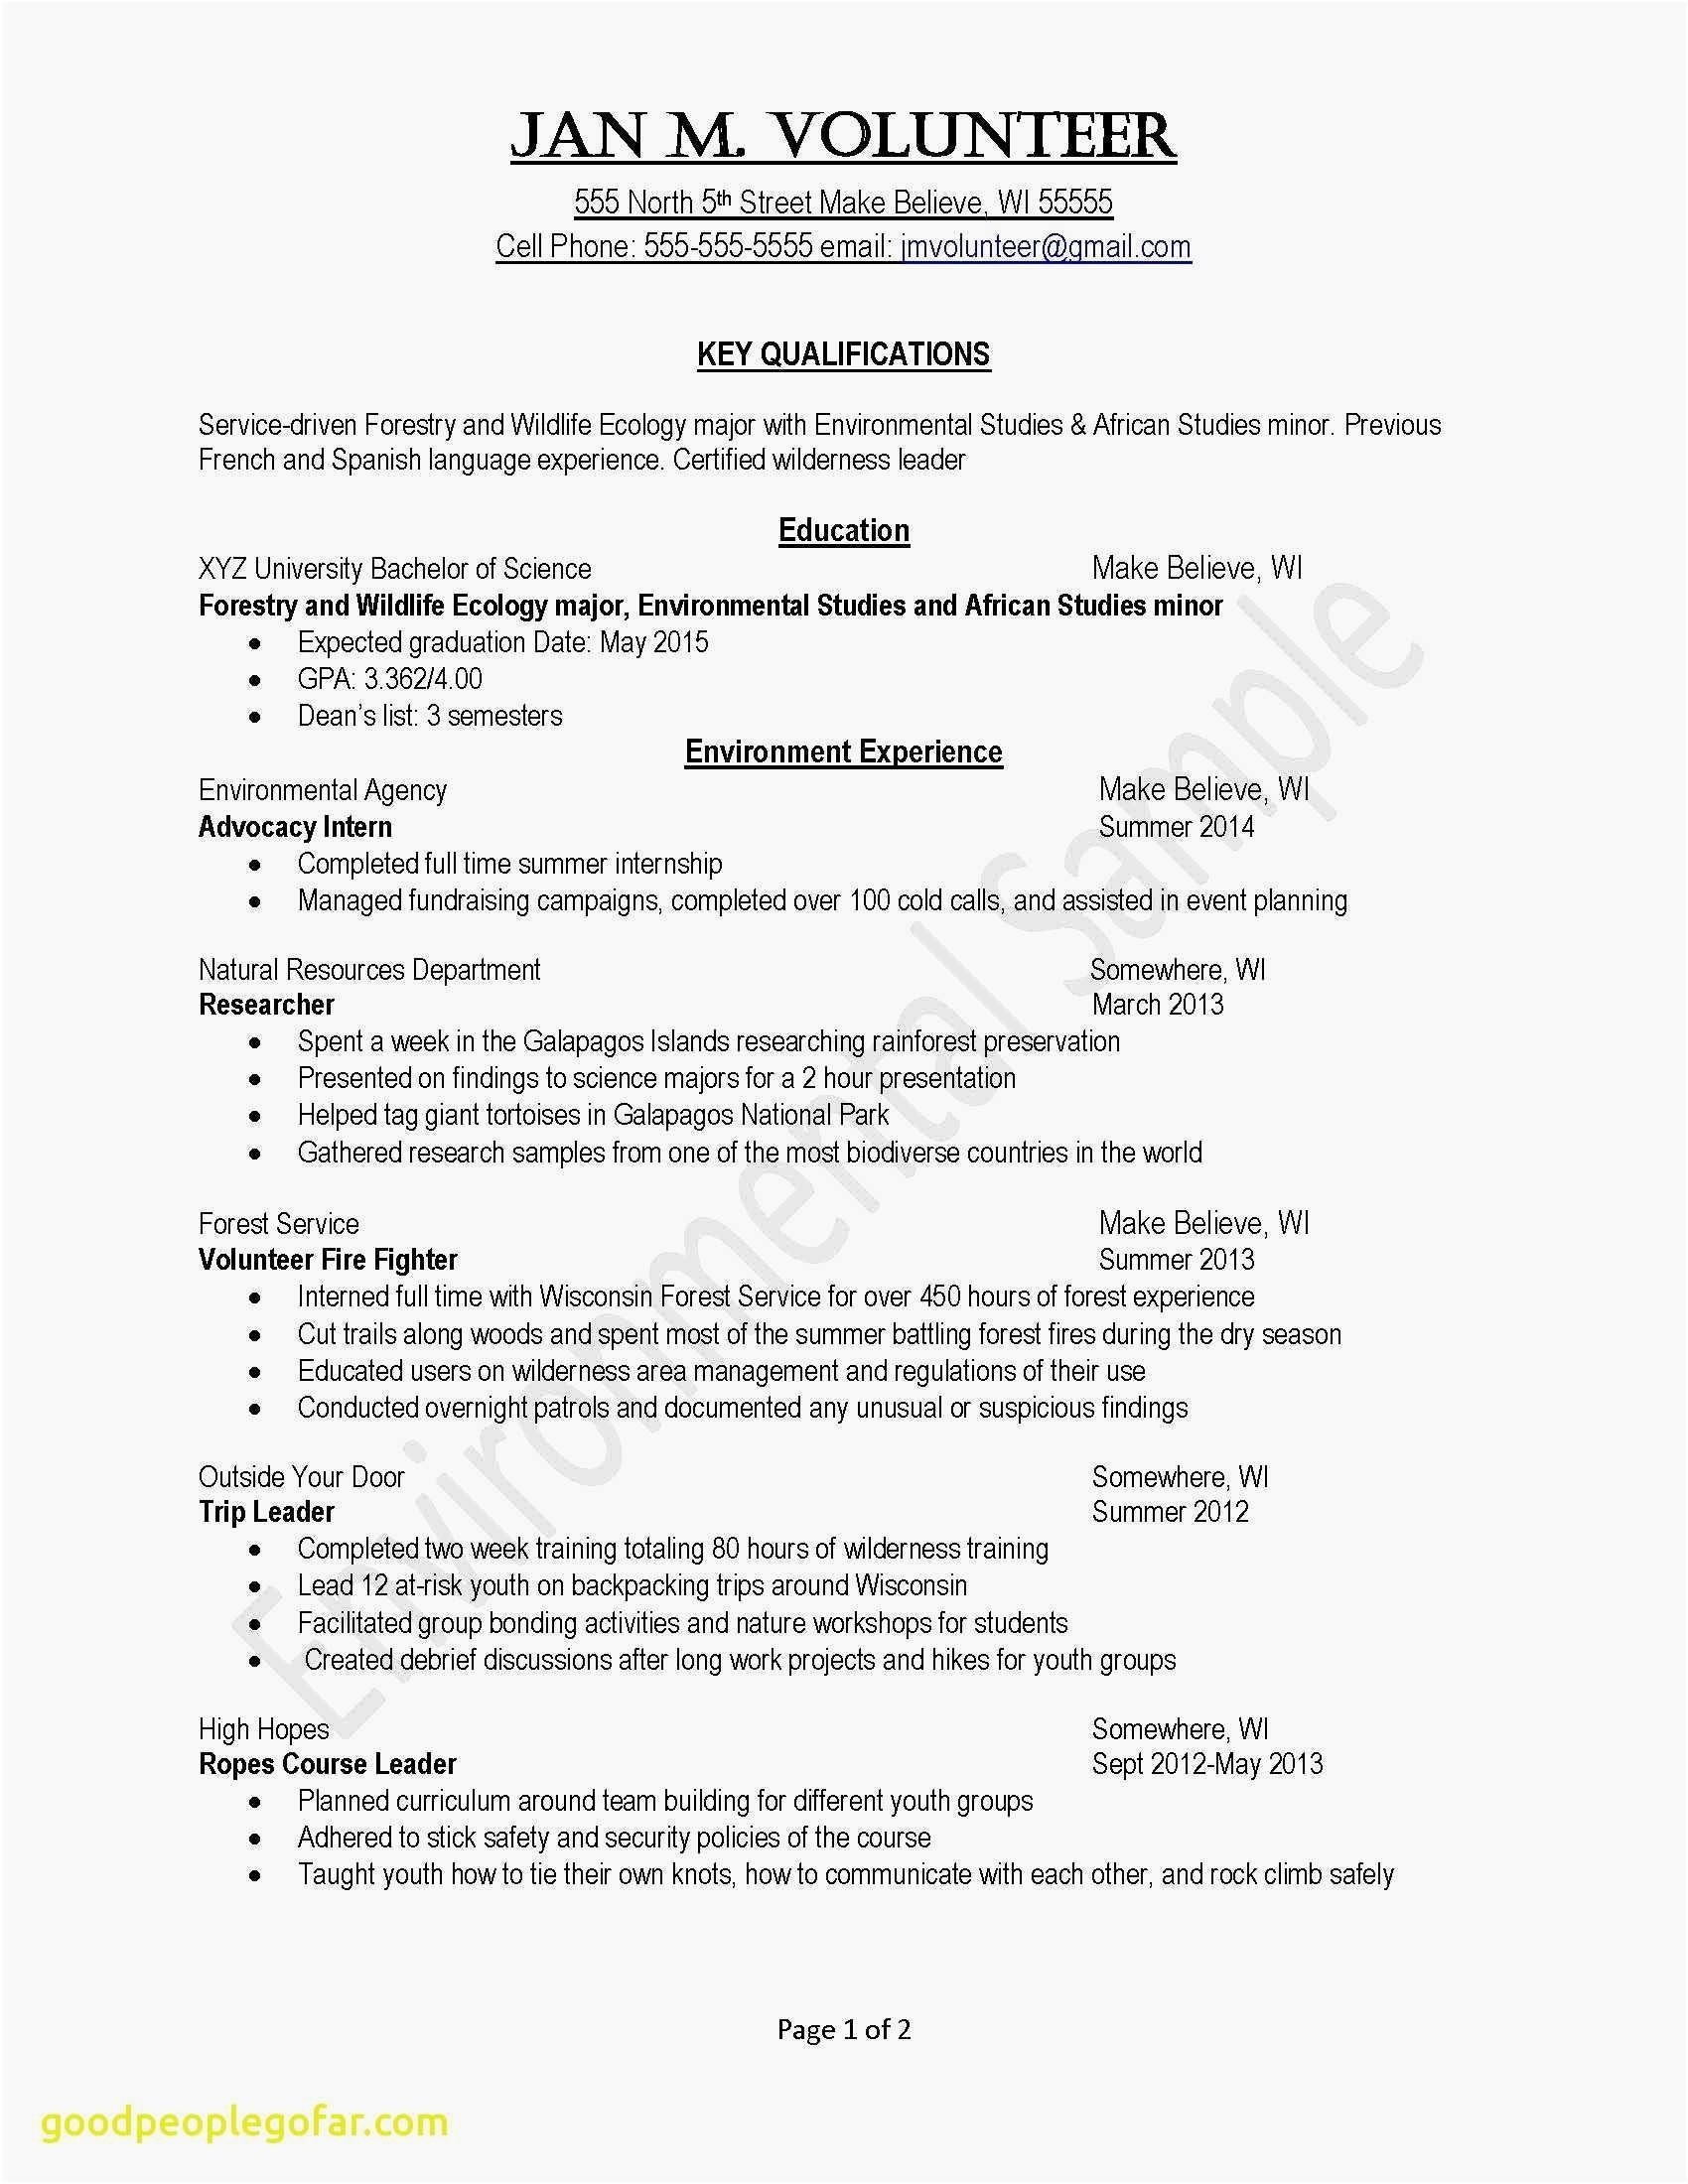 Audition Resume Template - Actors Resume New Awesome Examples Resumes Ecologist Resume 0d Free